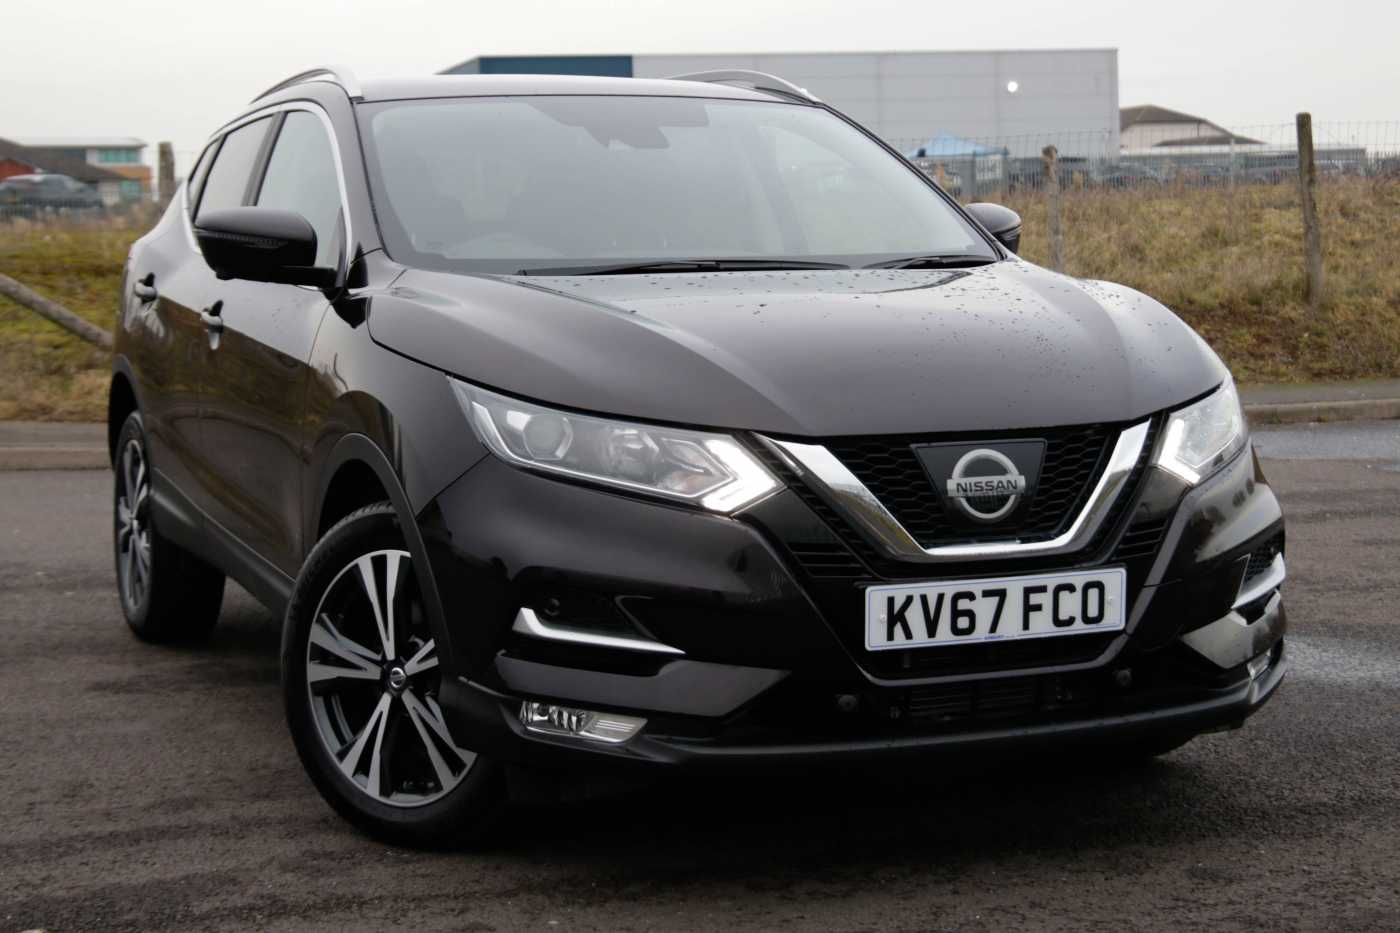 Nissan Qashqai Black For Sale In Bromsgrove Nissan Used Cars Uk